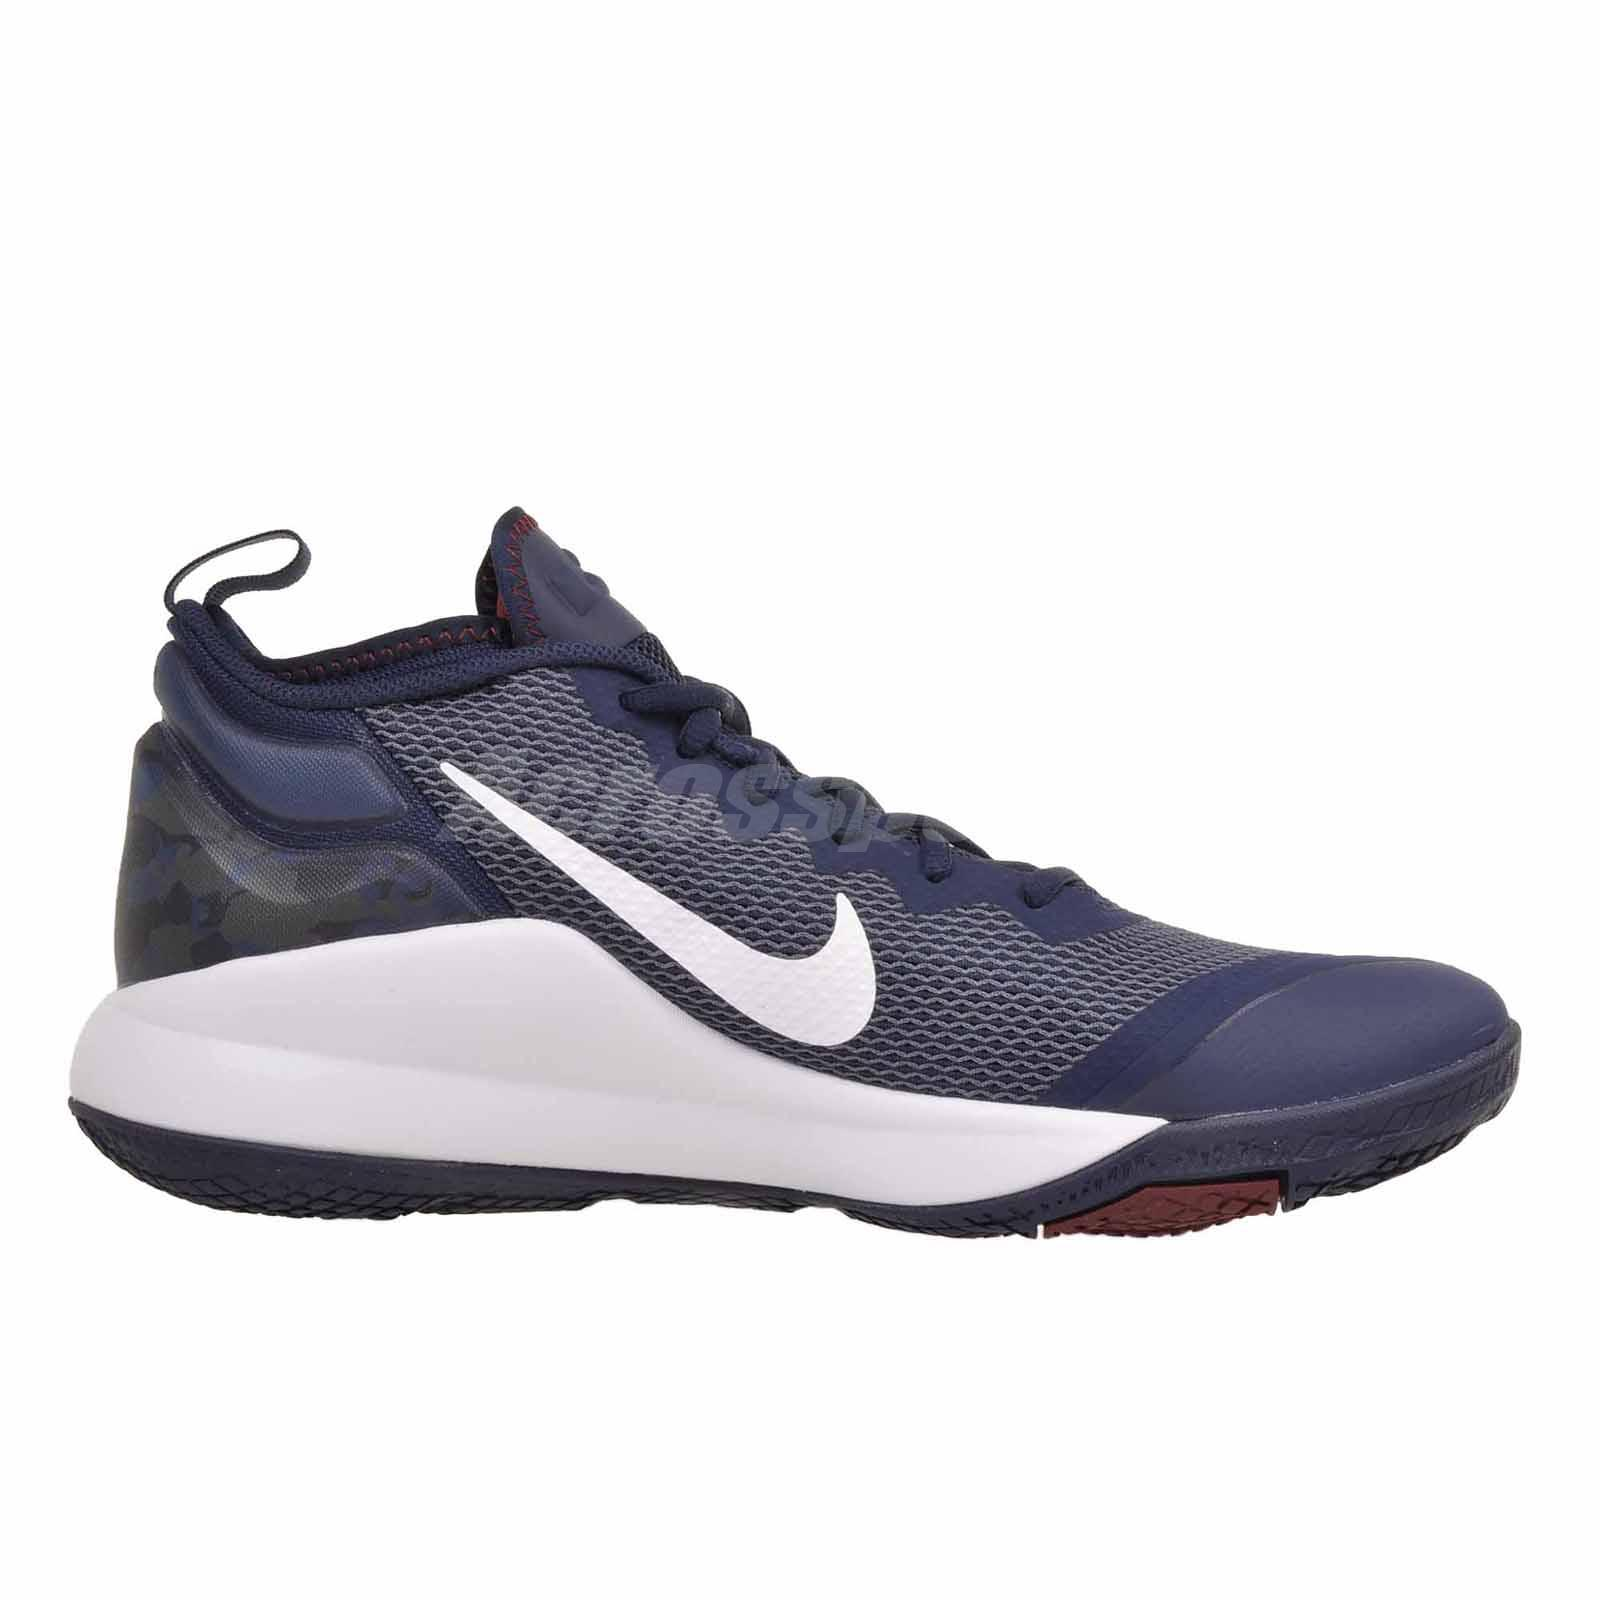 a71353036efd Nike Lebron Witness II Basketball Mens Shoes College Navy 942518-406 ...